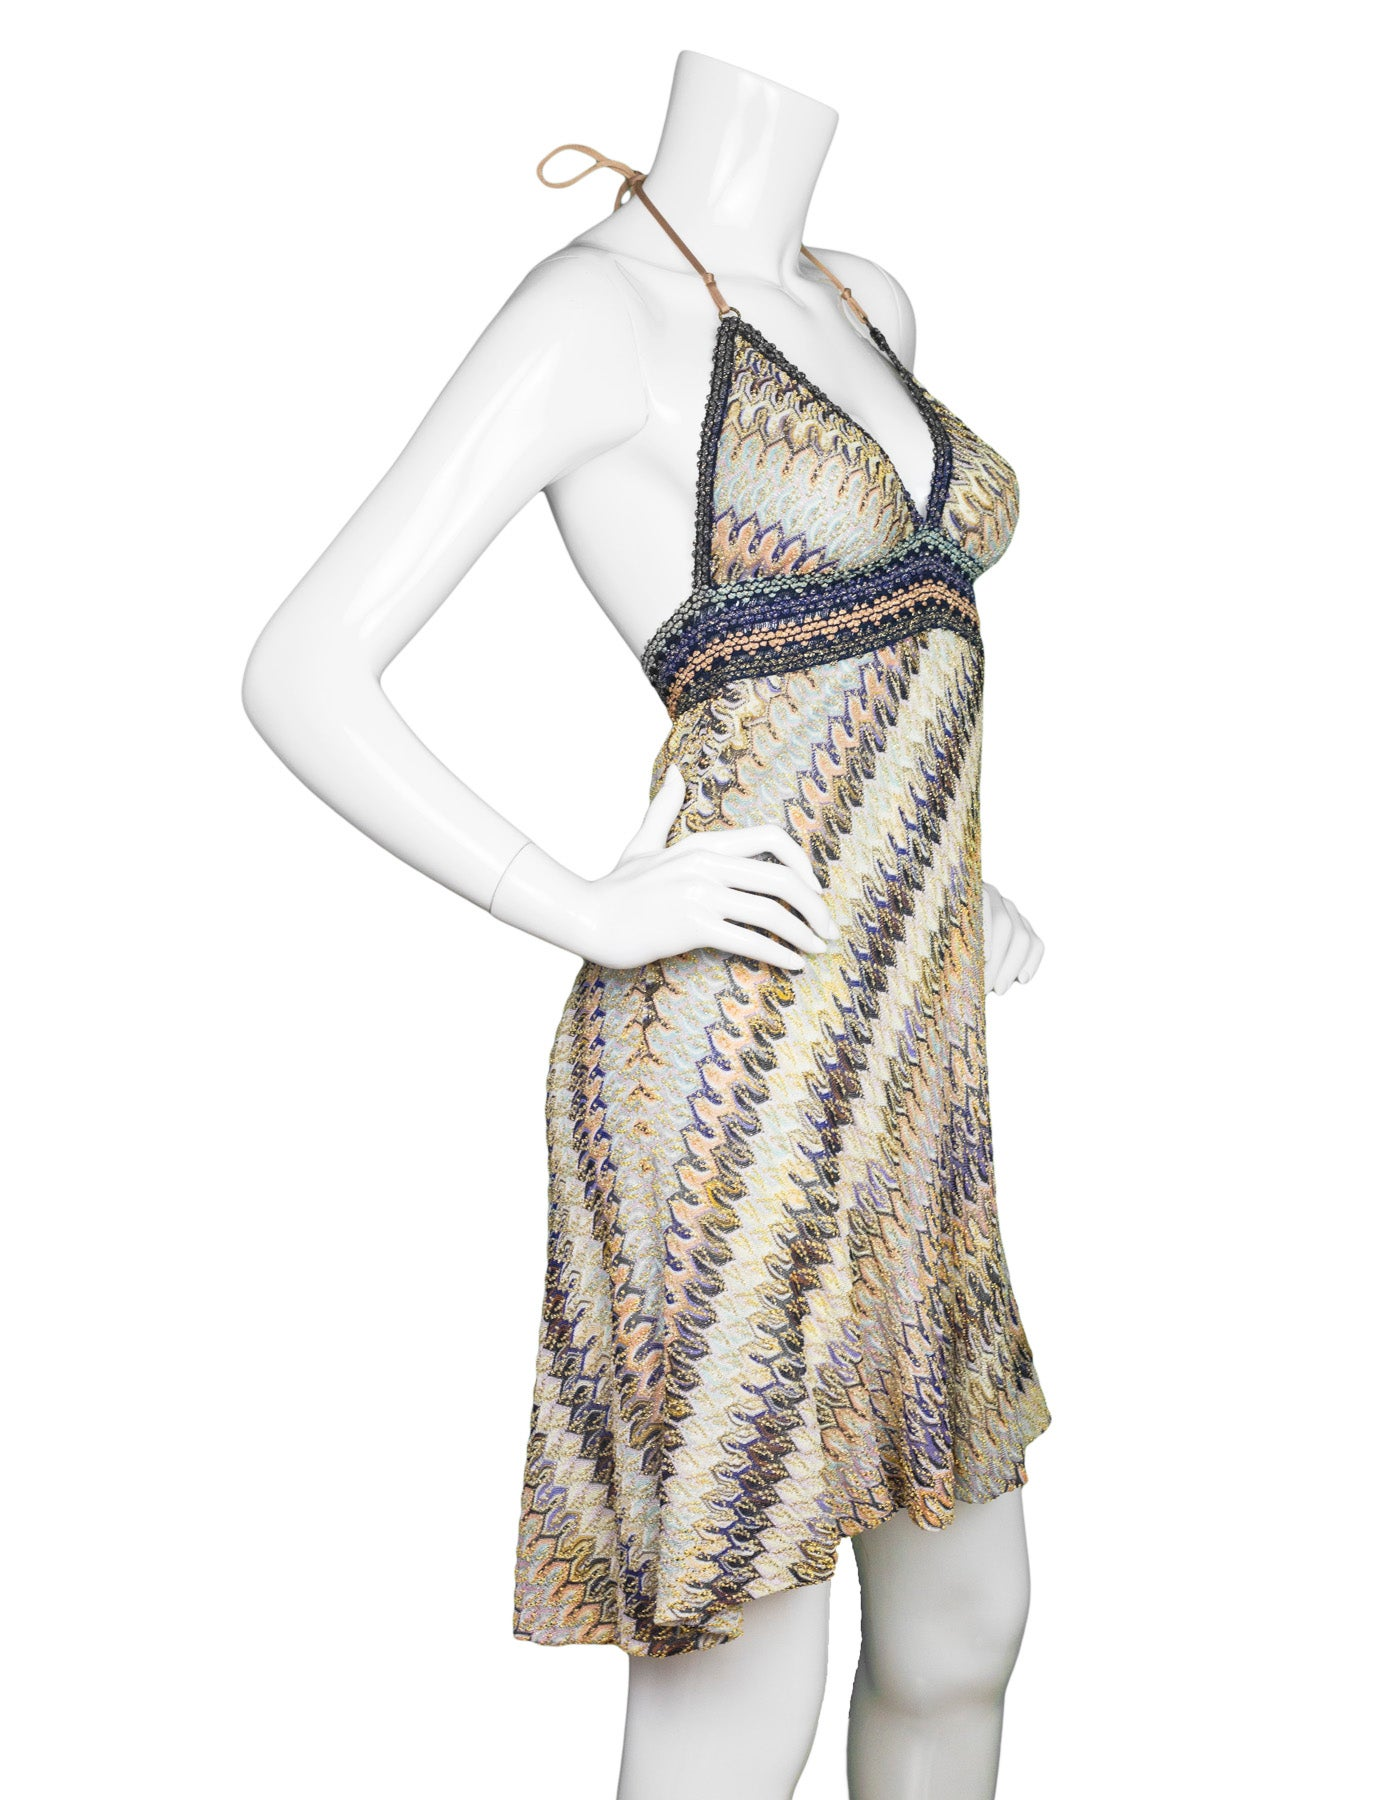 23be4565da66 Missoni Mare Multi-Colored Knit Halter Dress sz S For Sale at 1stdibs